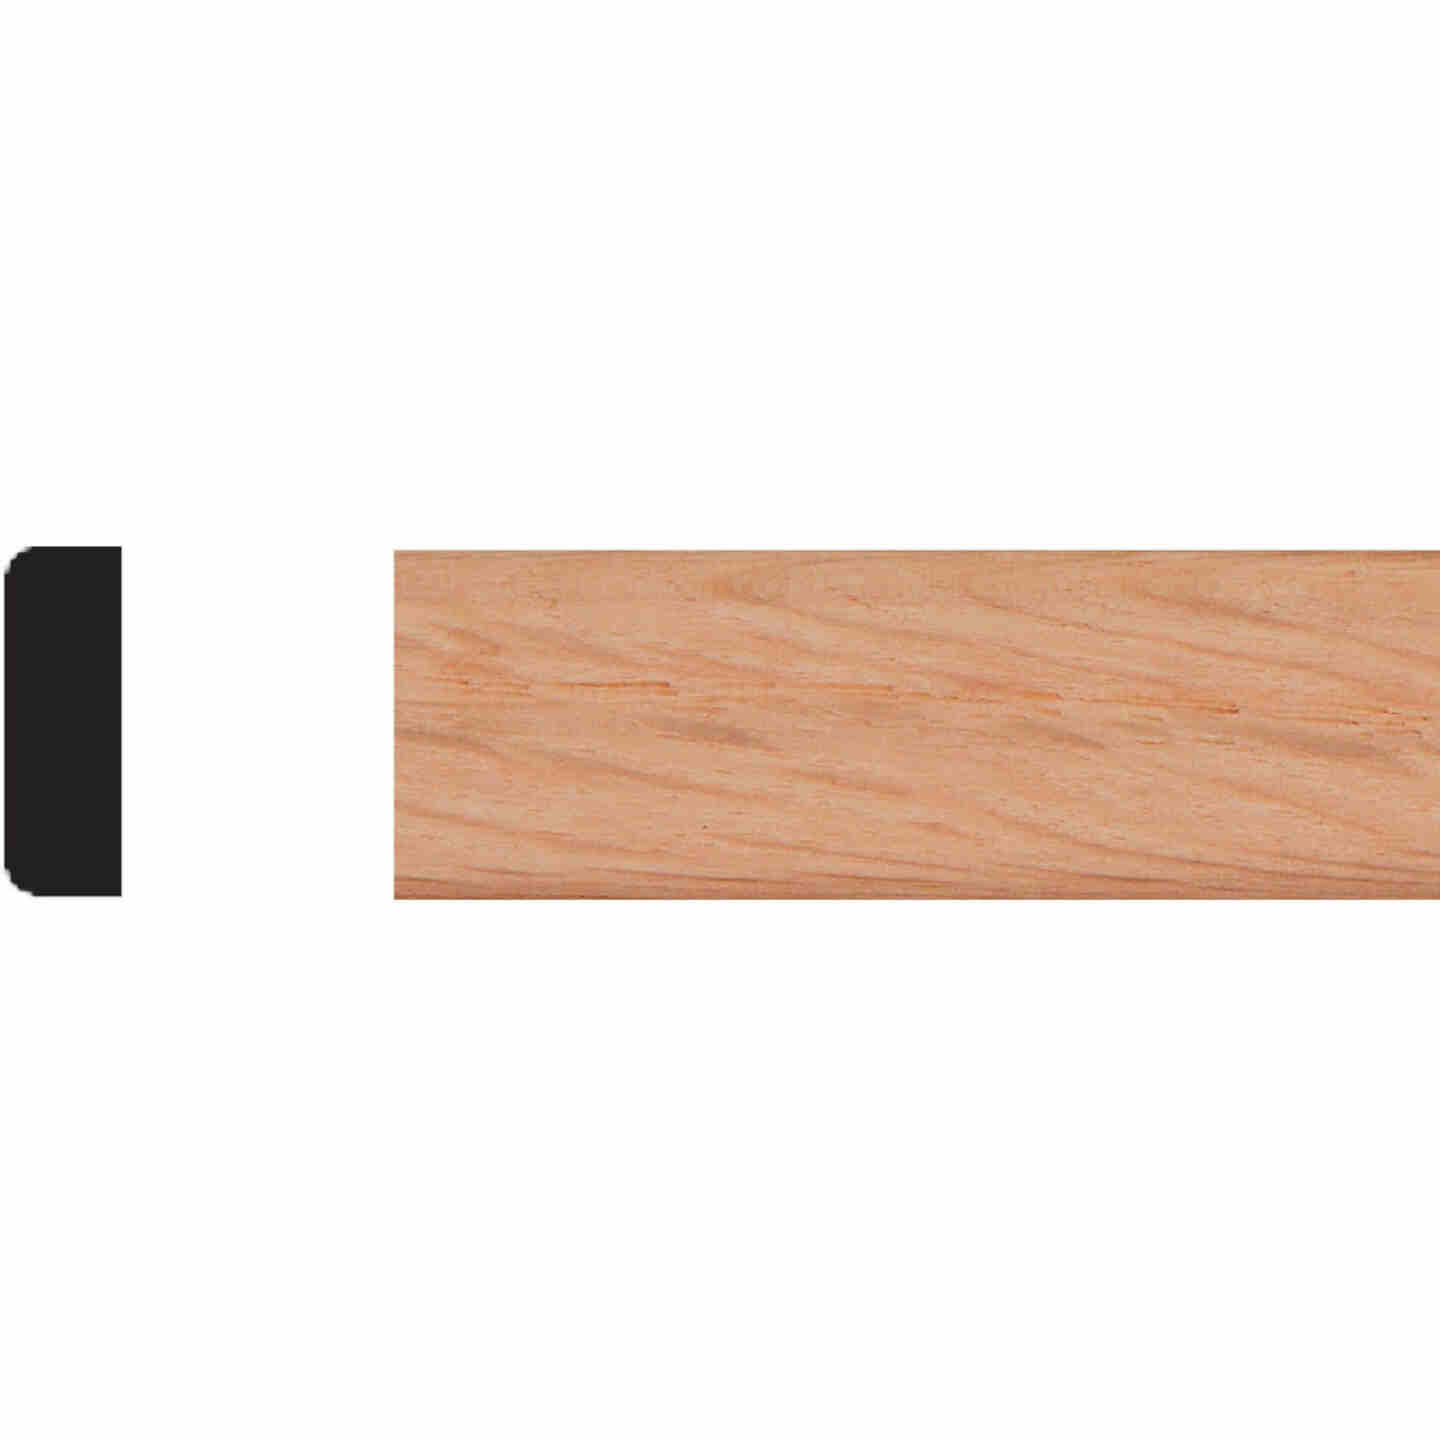 House of Fara 1/4 In. x 3/4 In. x 8 Ft. Unfinished Red Oak Screen Bead Molding Image 1